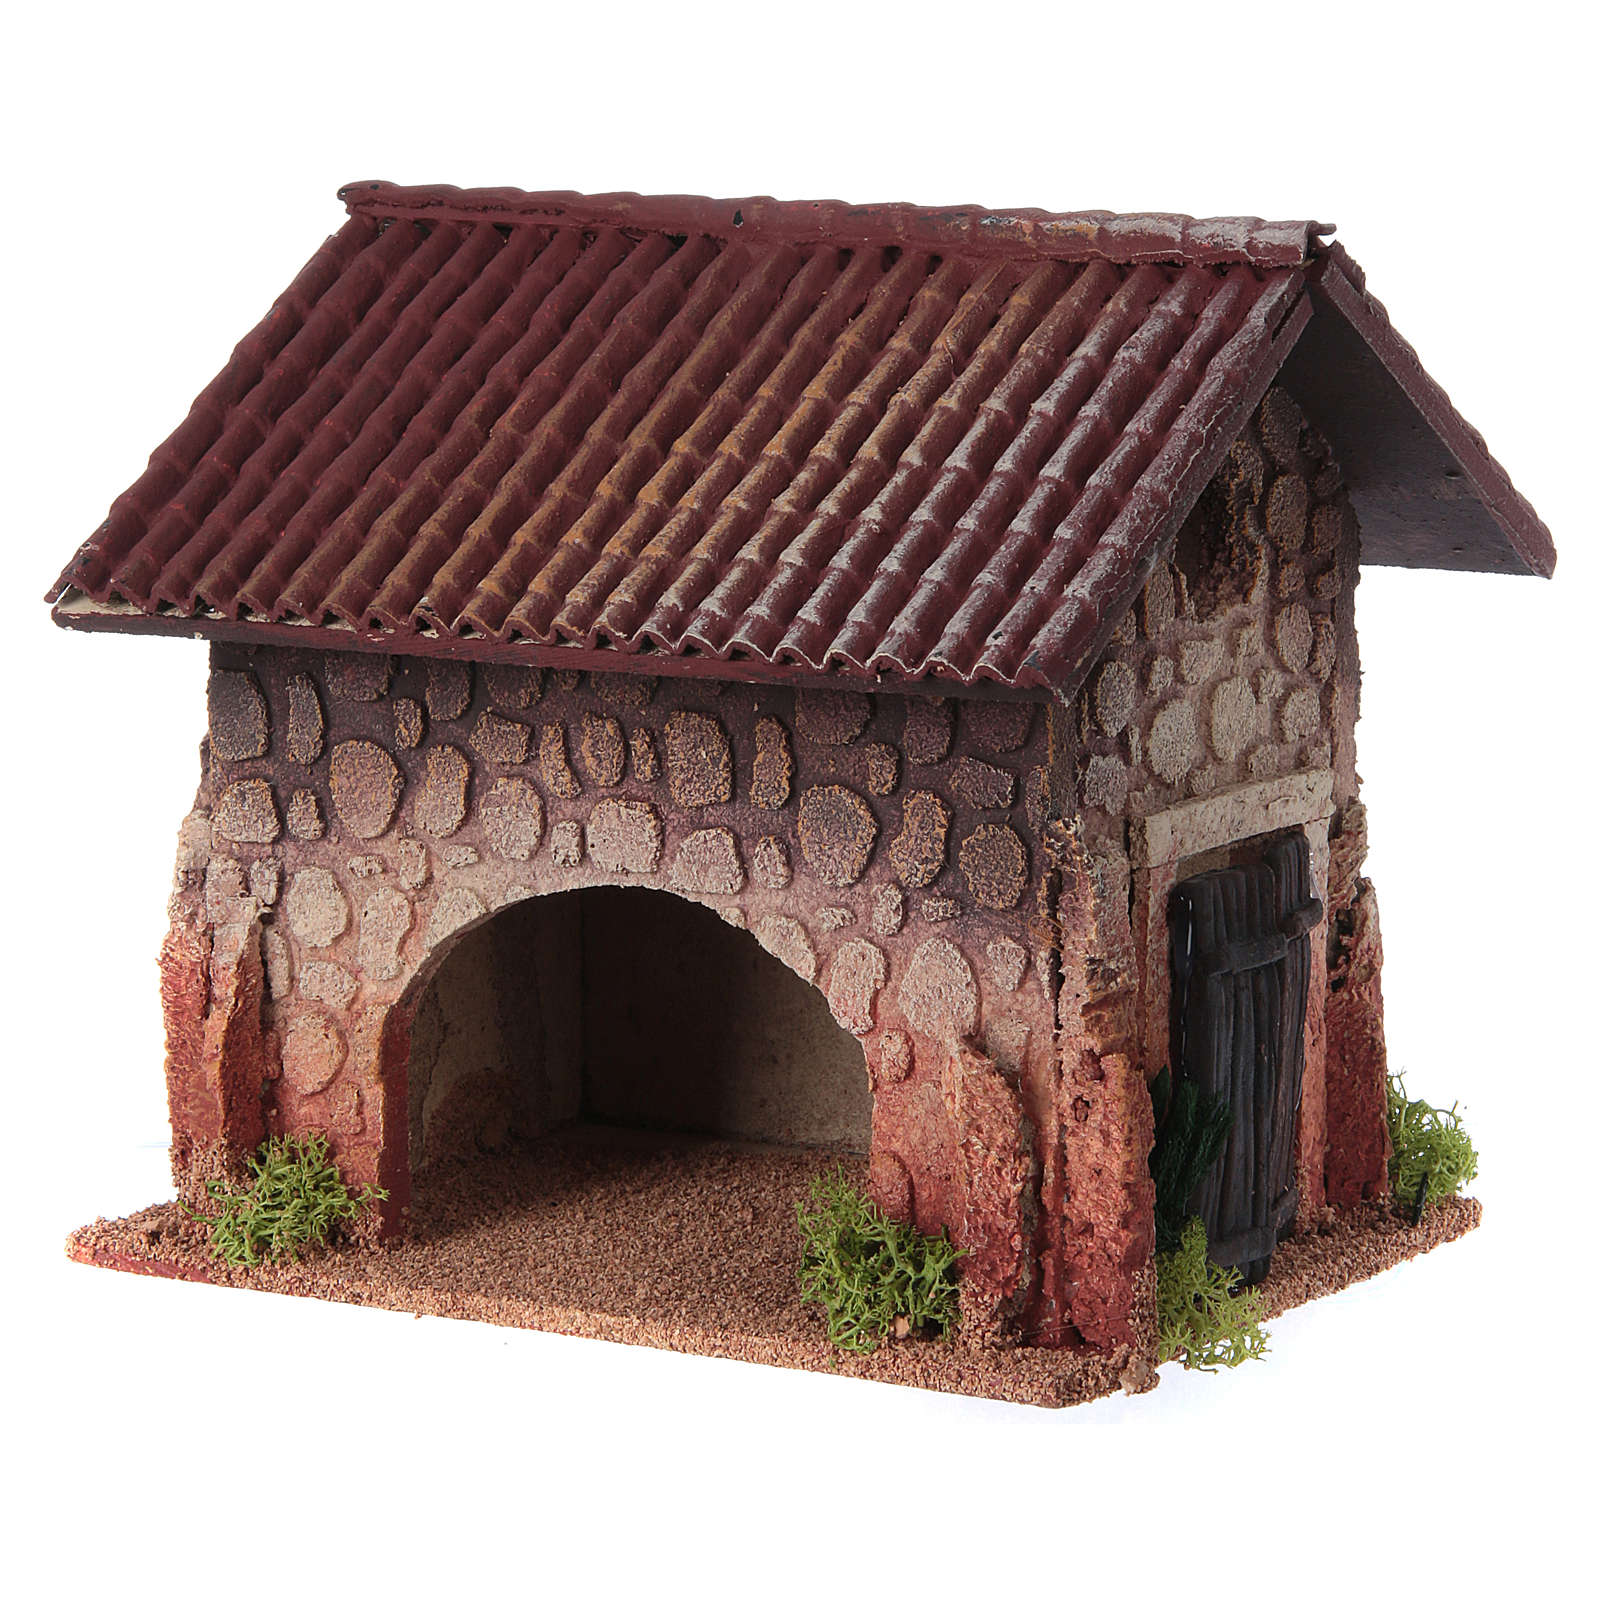 Casa rurale stile nordico 19x15x20 cm 4